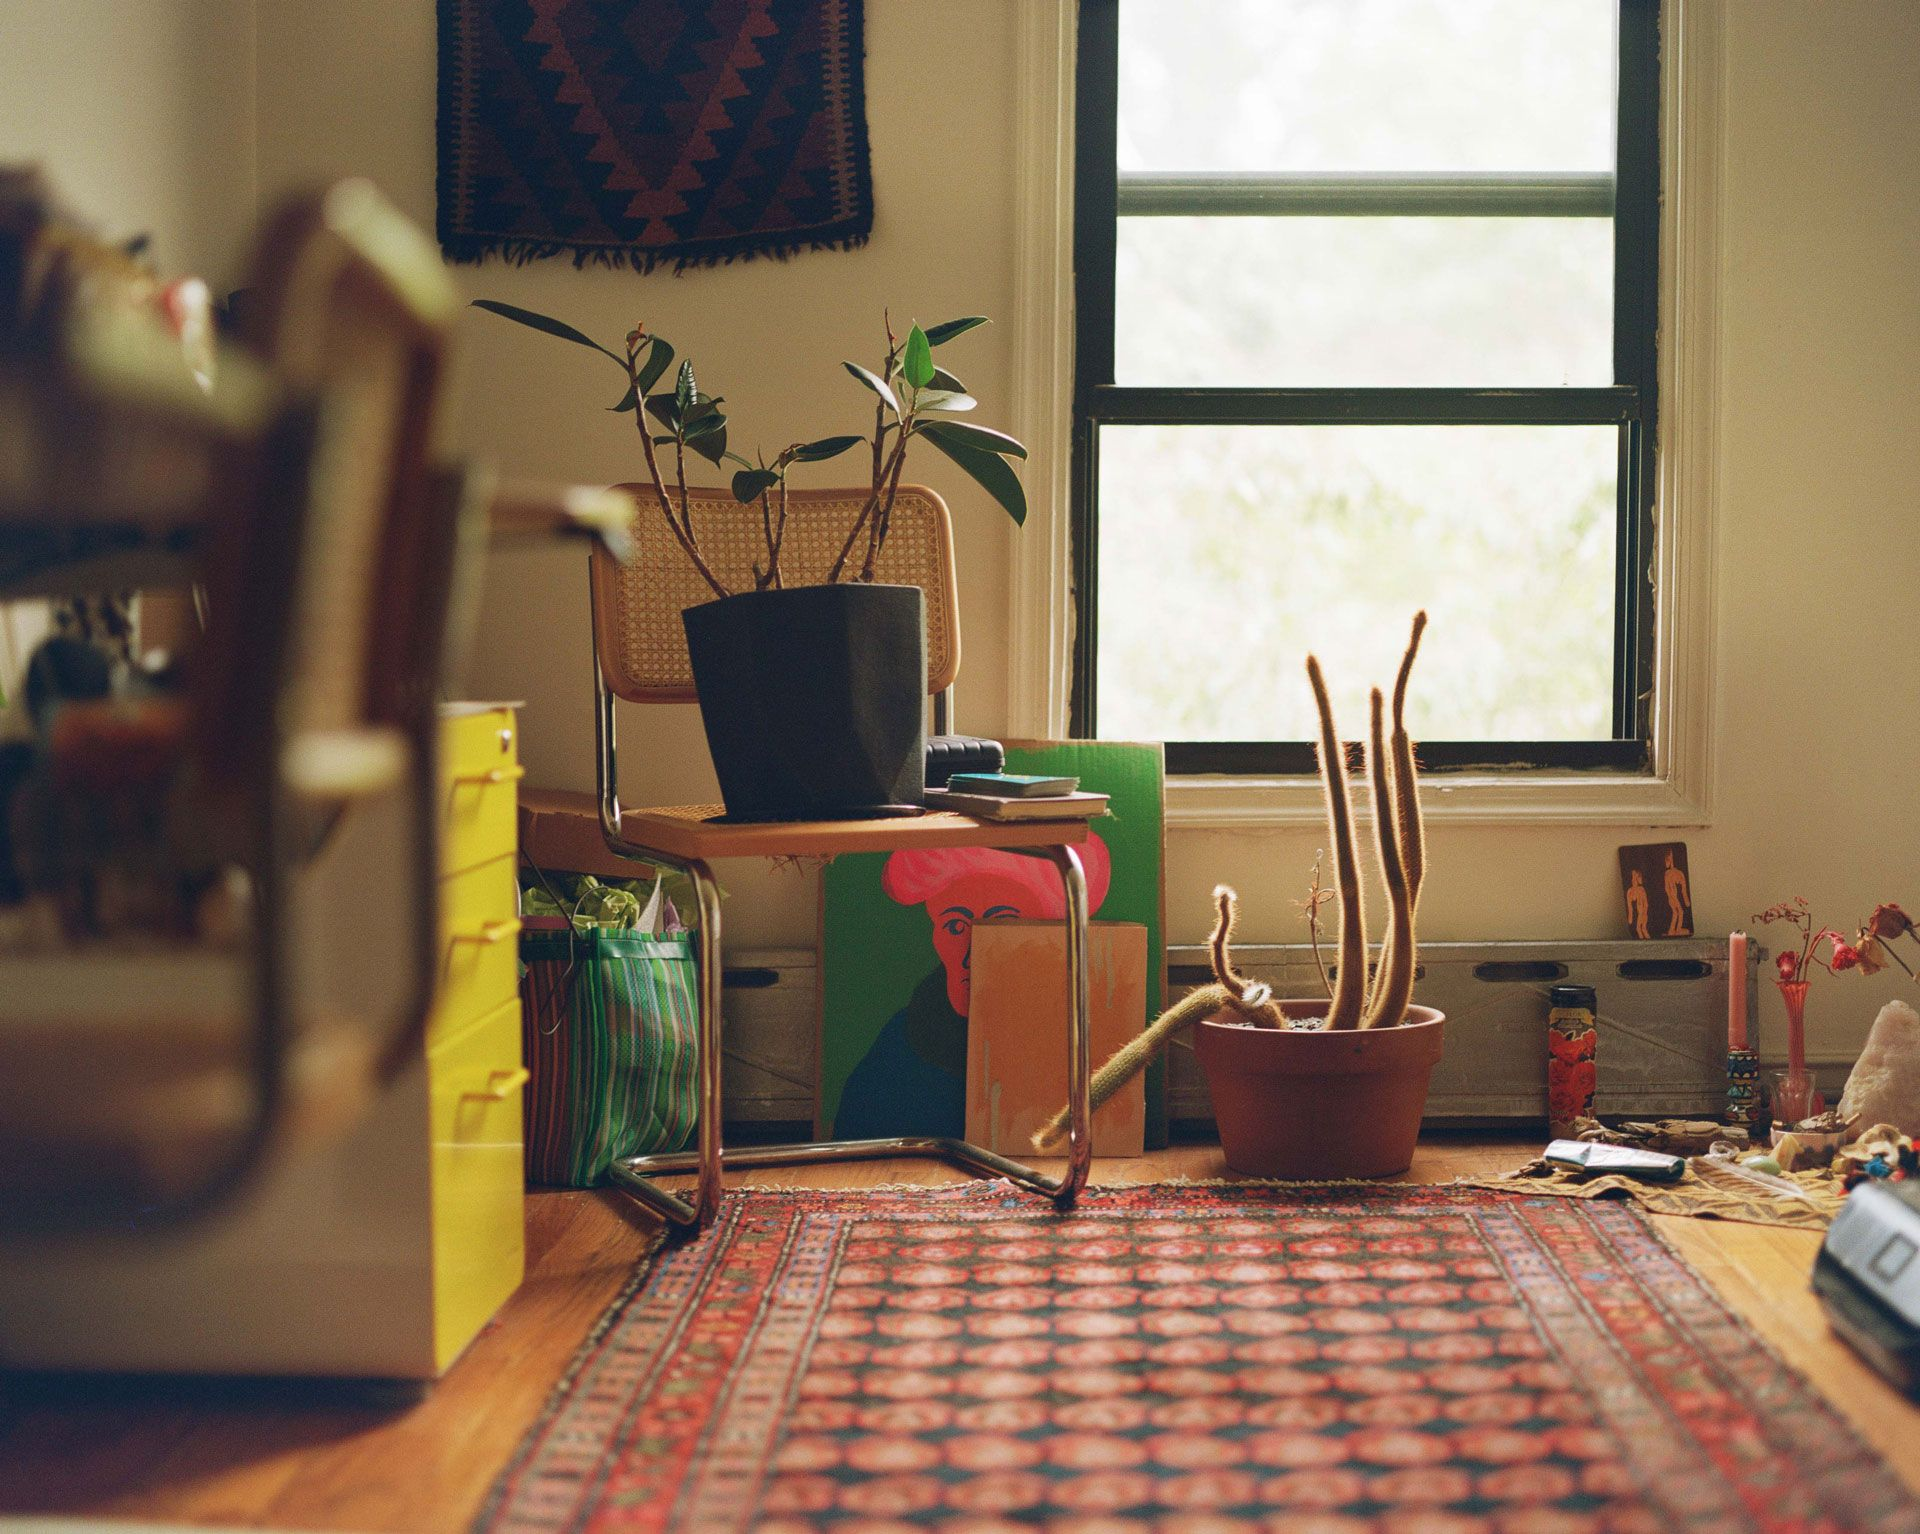 living room of writer Fariha Roisin with potter plant on rotin chair photographed by Oumayma B. Tanfous for Levi's